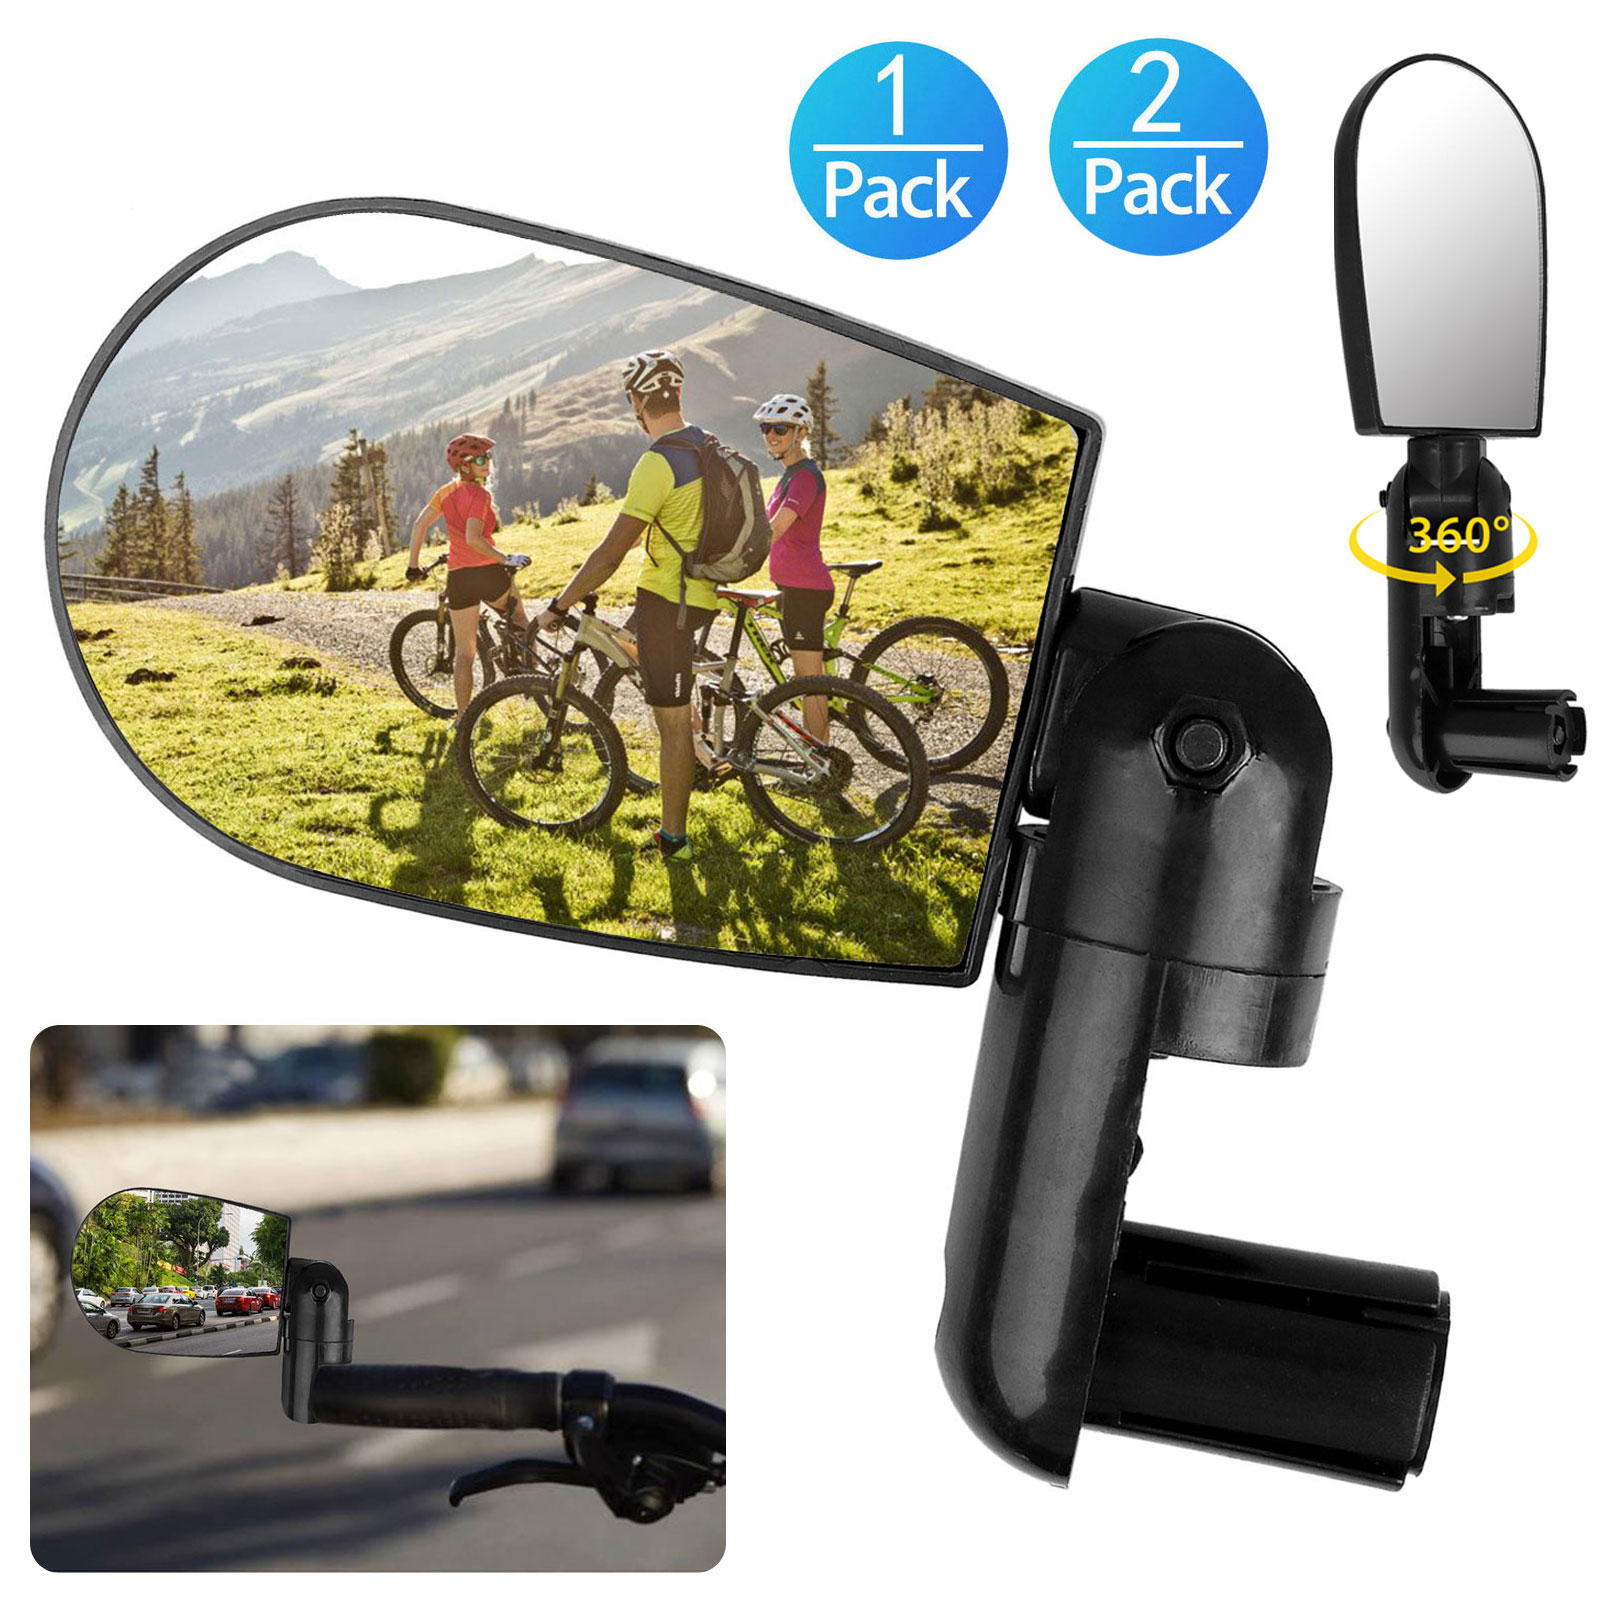 Rotatable-Handlebar-Rearview-Mirror-for-Bike-Bicycle-Cycling-Rear-View-Mirror